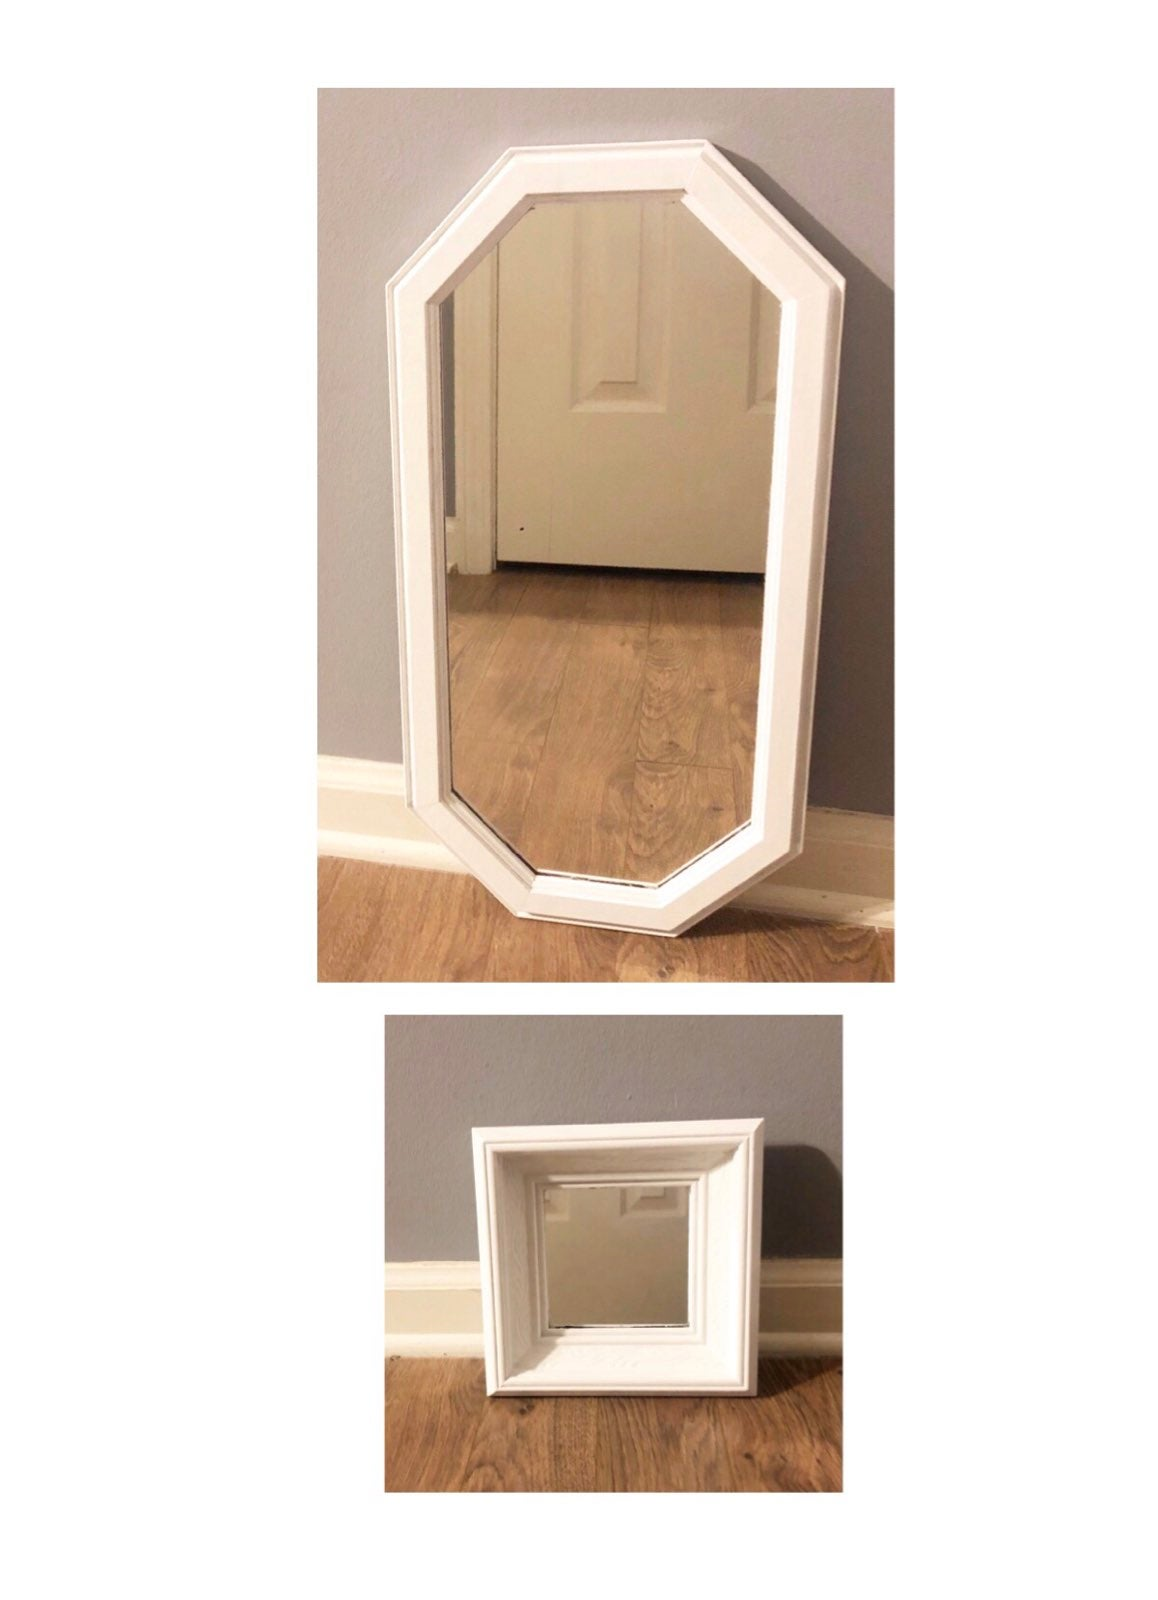 2 White Hand Painted Wooden Wall Mirrors